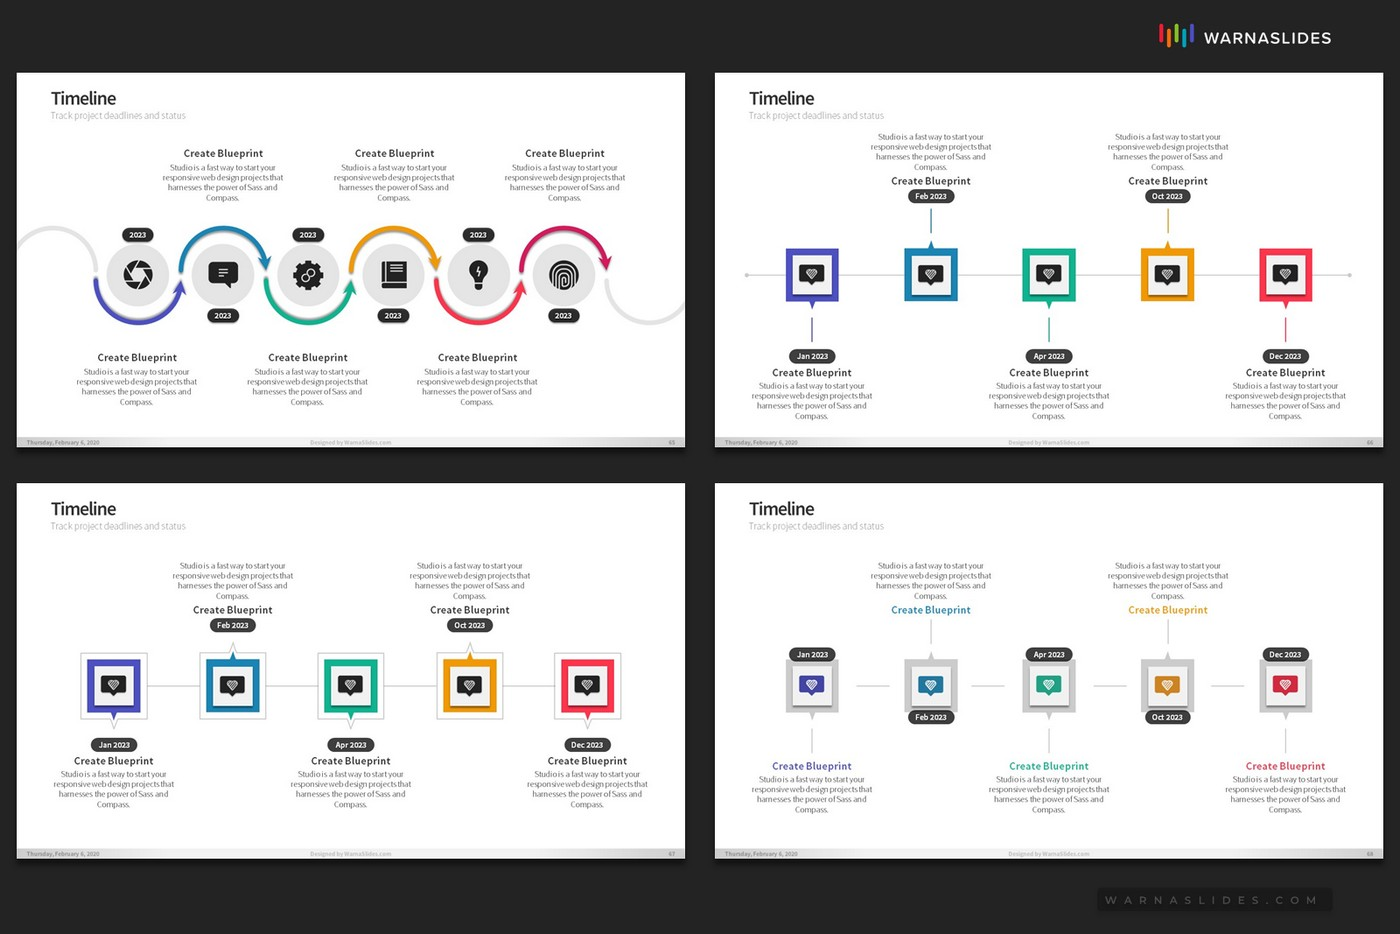 Project-Timeline-History-PowerPoint-Template-for-Business-Pitch-Deck-Professional-Creative-PowerPoint-Icons-014